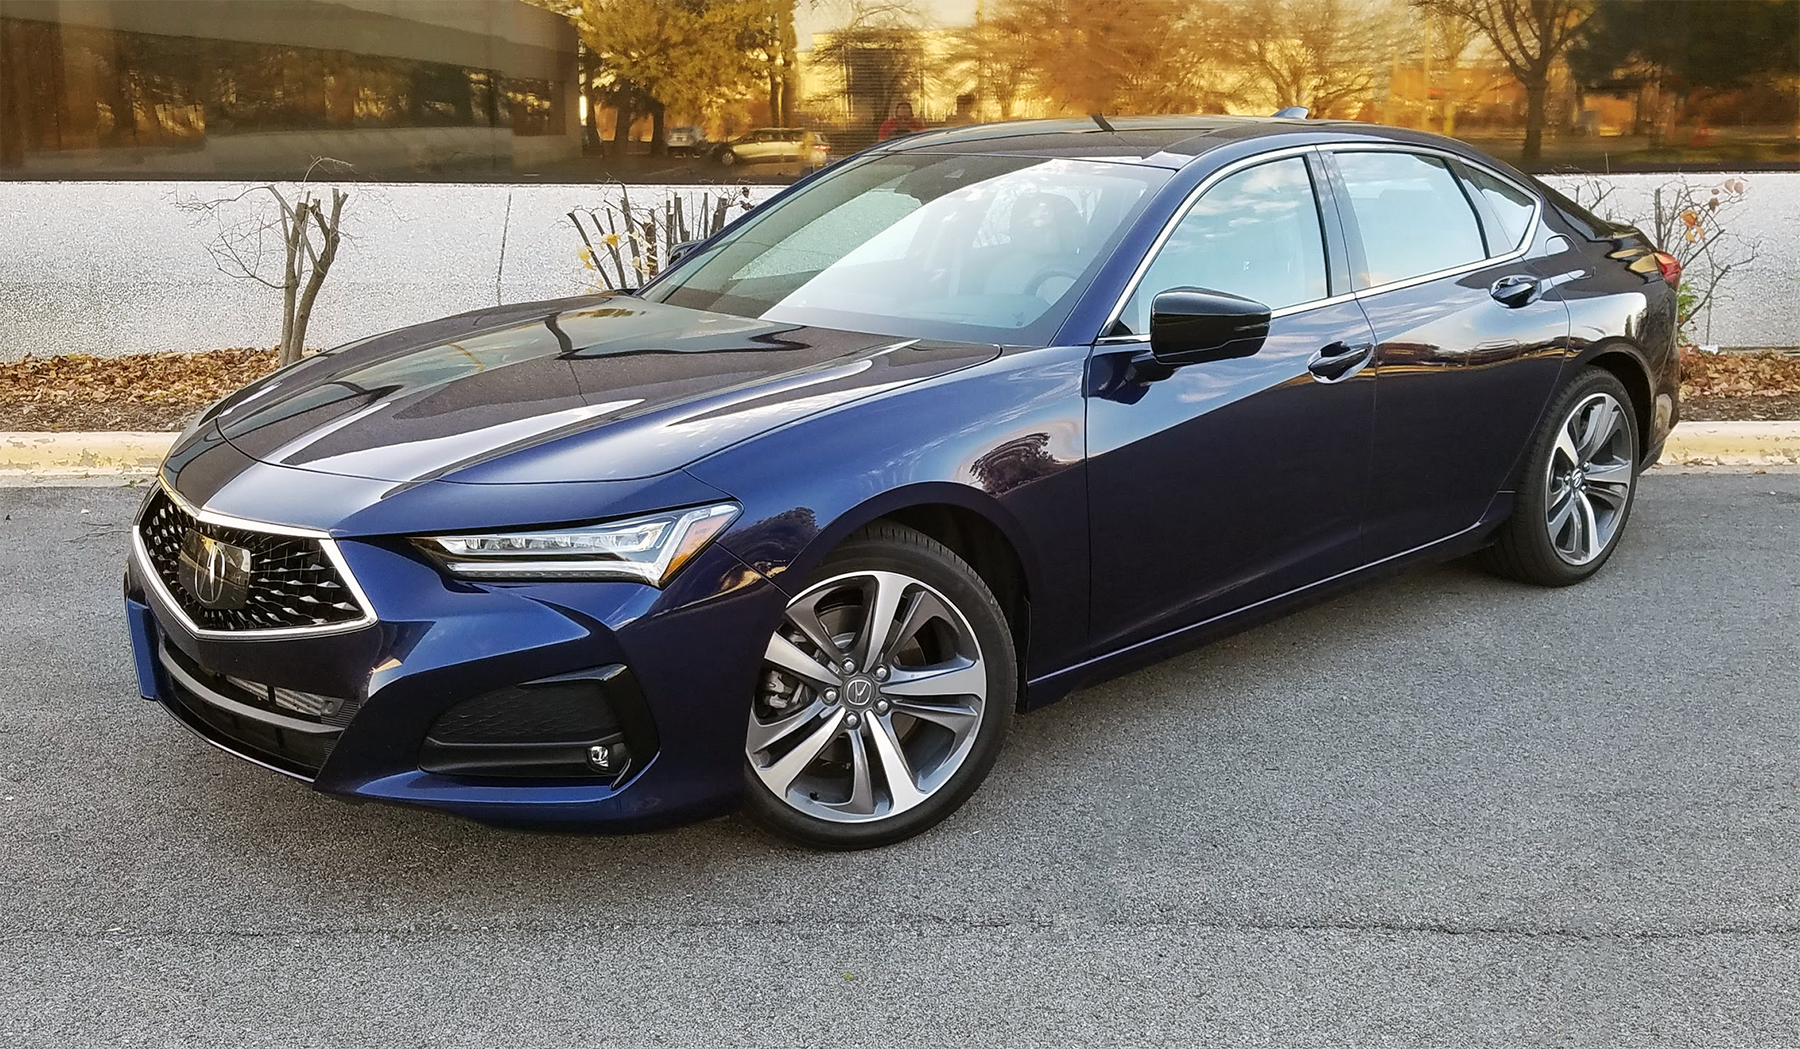 Test Drive 2021 Acura Tlx The Daily Drive Consumer Guide The Daily Drive Consumer Guide